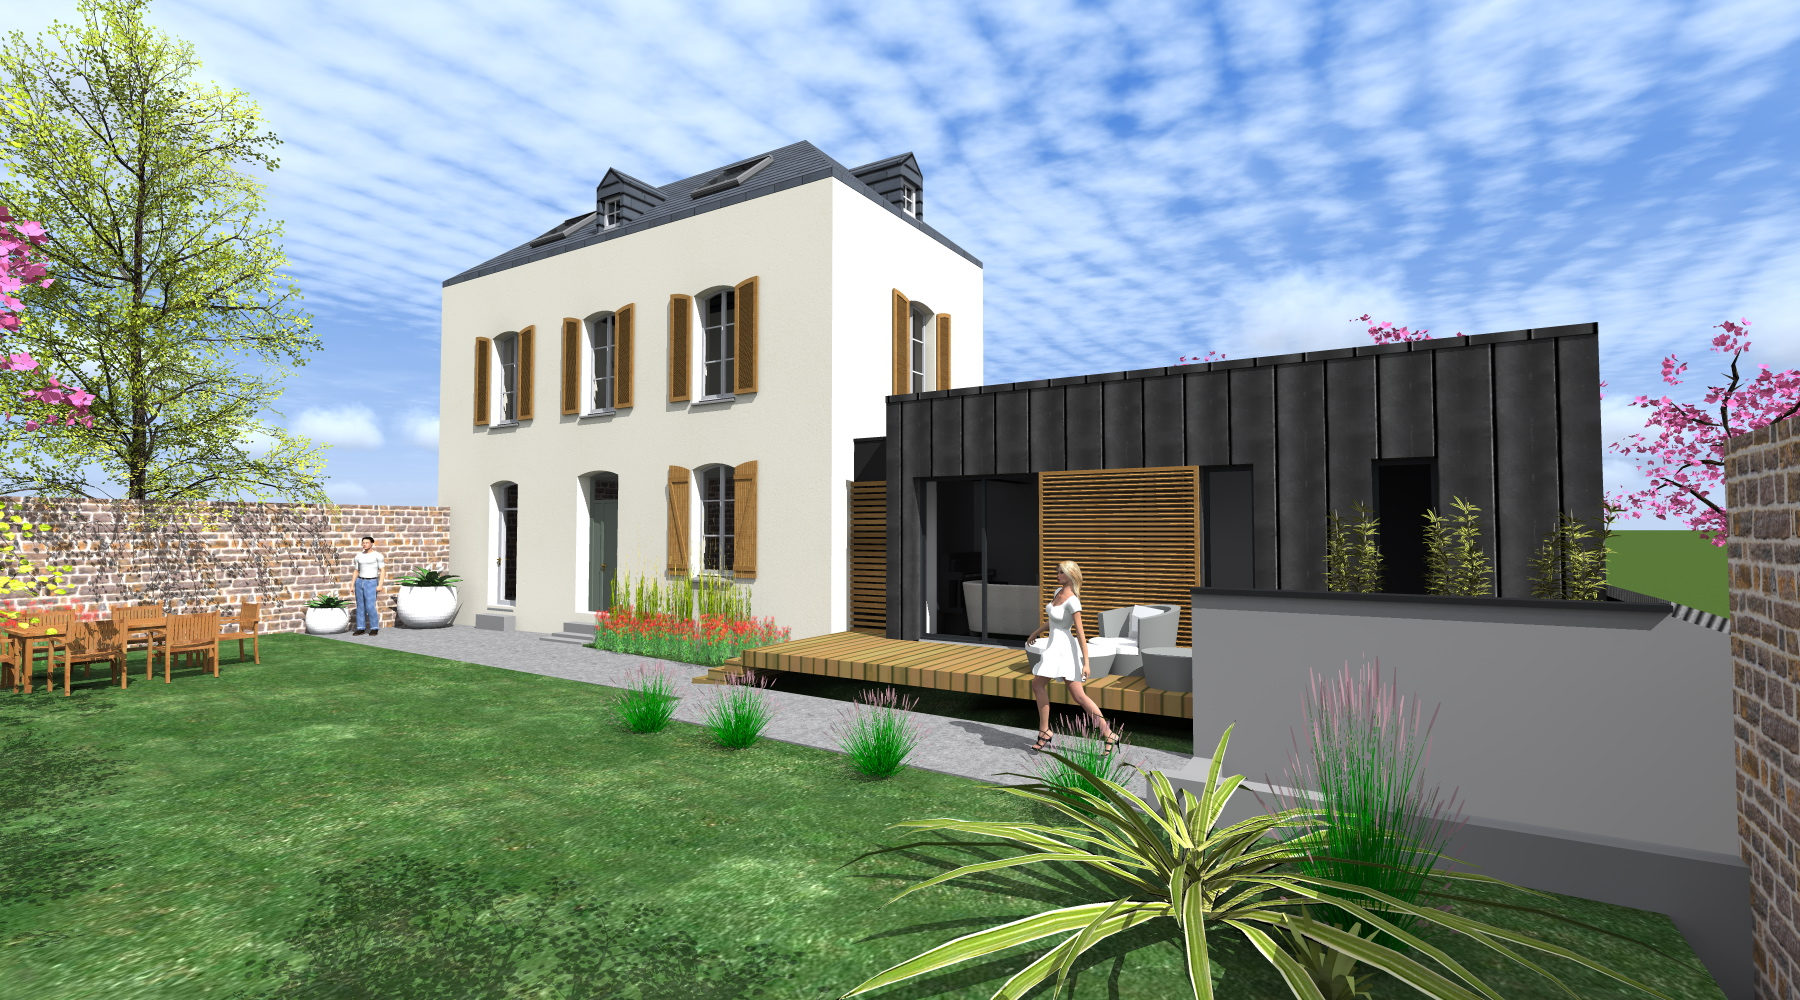 Projet l l 1 2 vue architecte lise roturier rennes for Cube extension maison